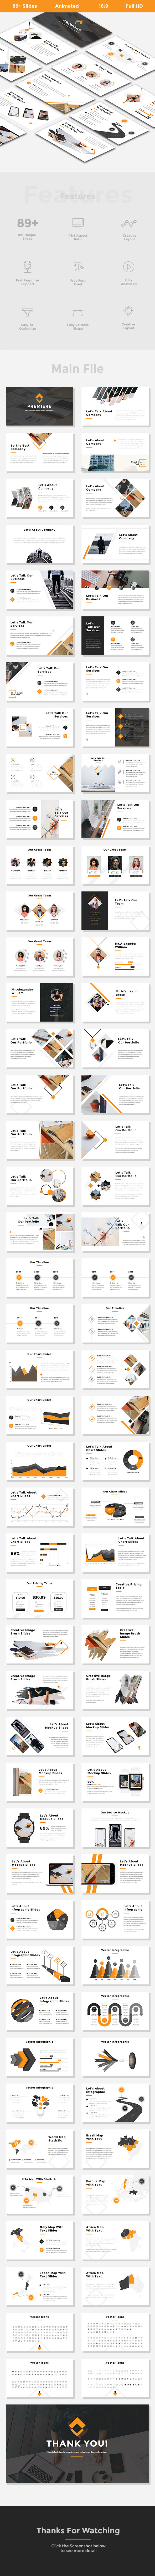 Premiere - Creative & Clean Powerpoint Template - Creative PowerPoint Templates